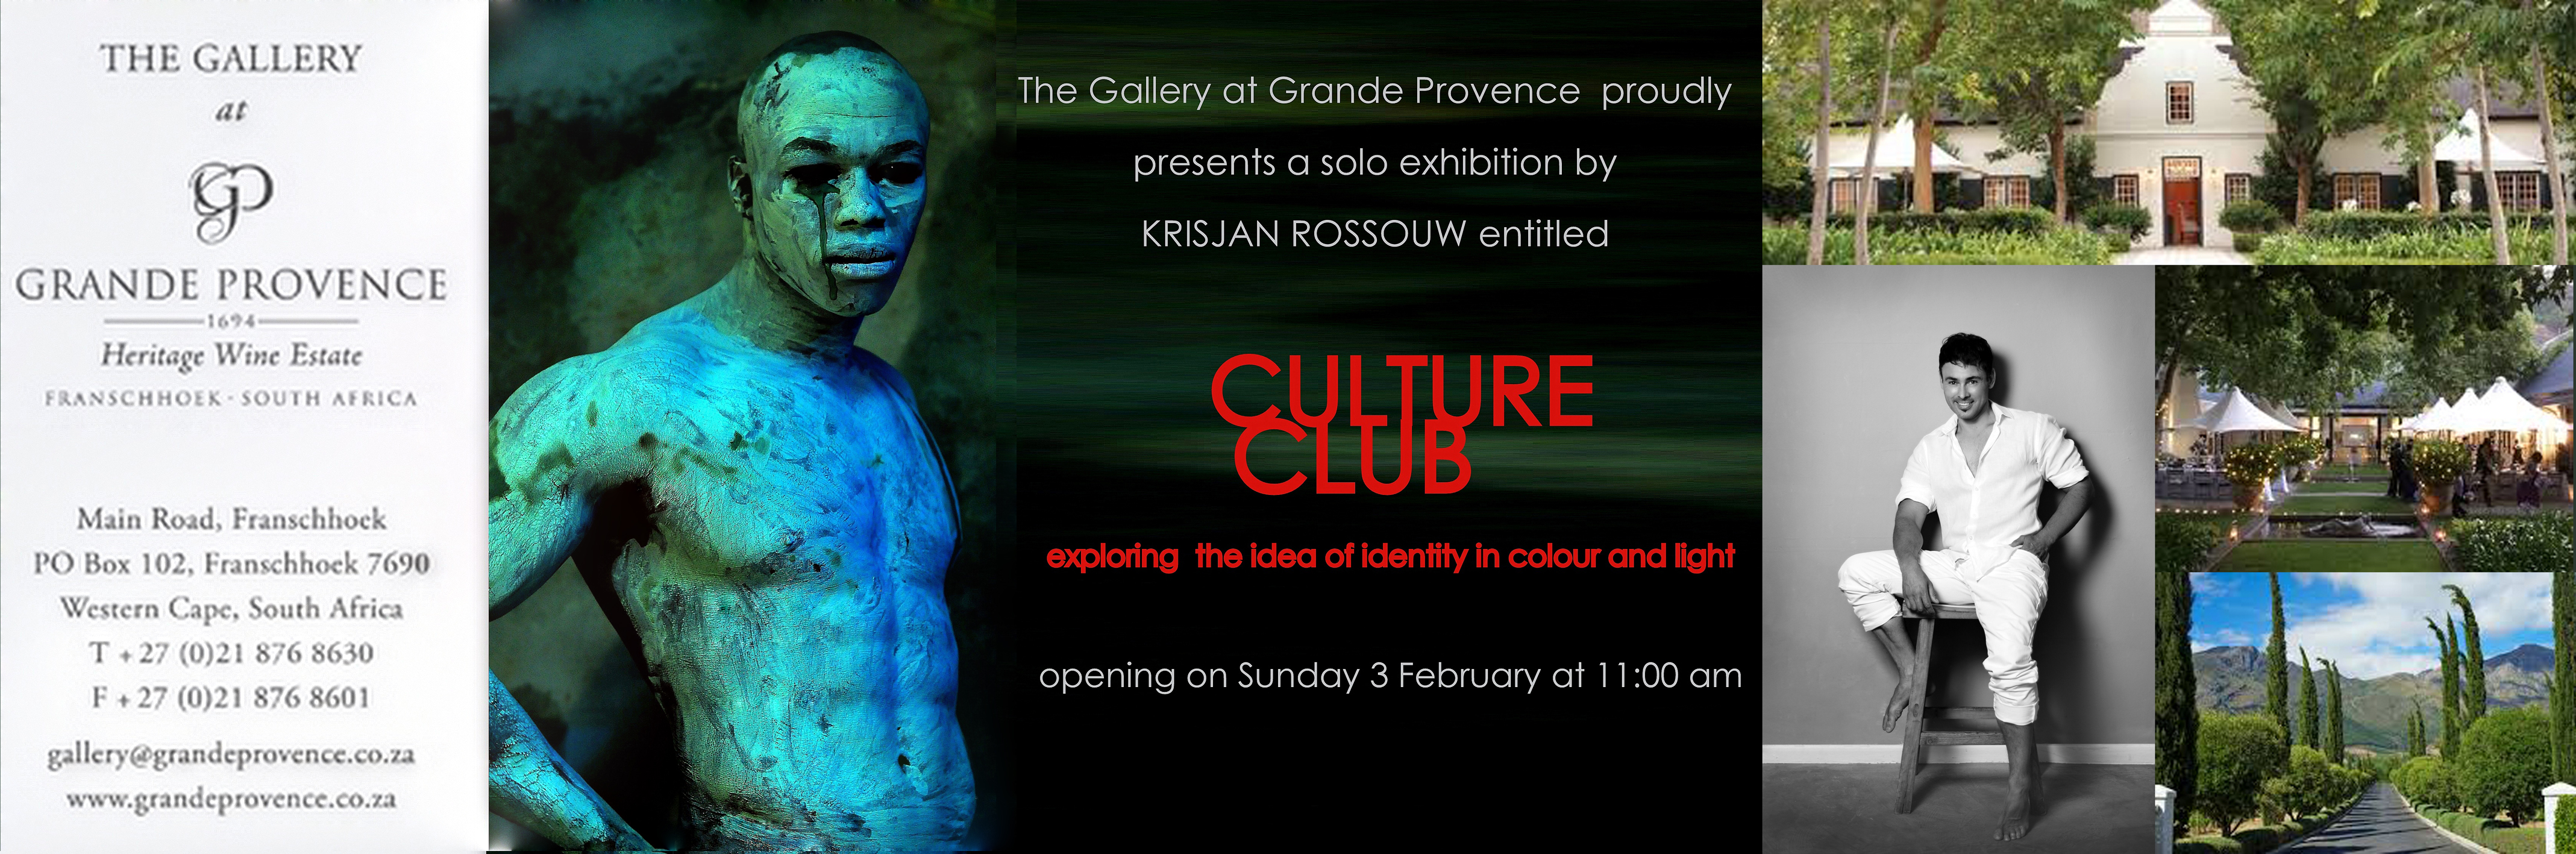 The Gallery at Grande Provence presents a solo exhibition of contemporary photography by Krisjan Rossouw entitled Culture Club.